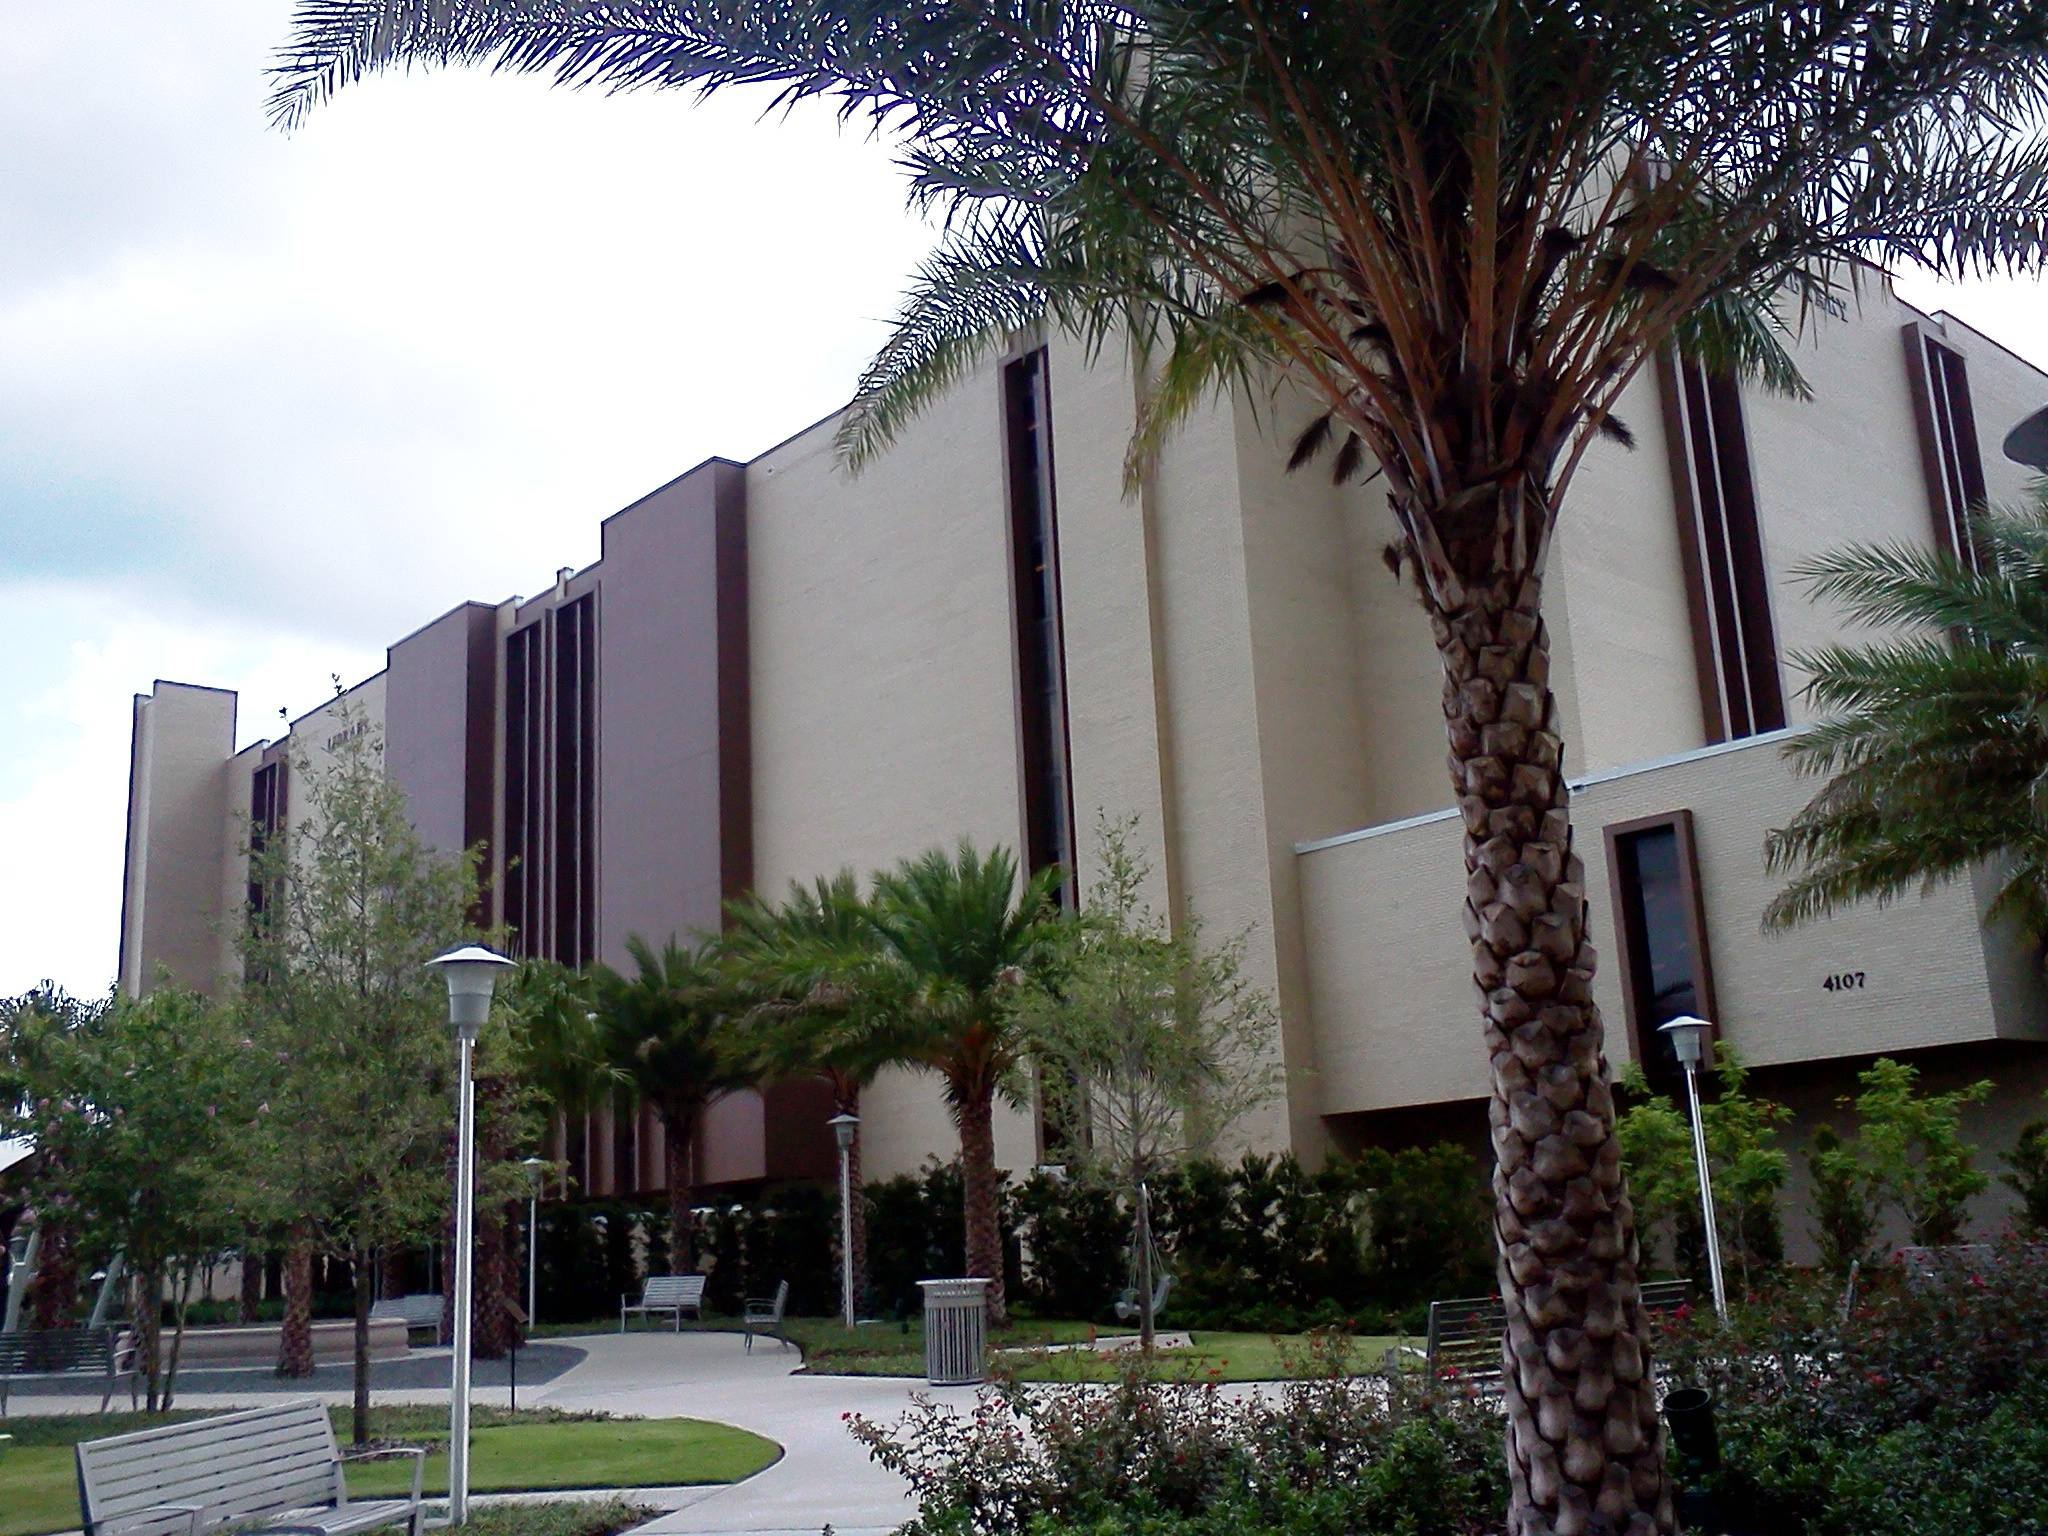 Usf Library Study Rooms